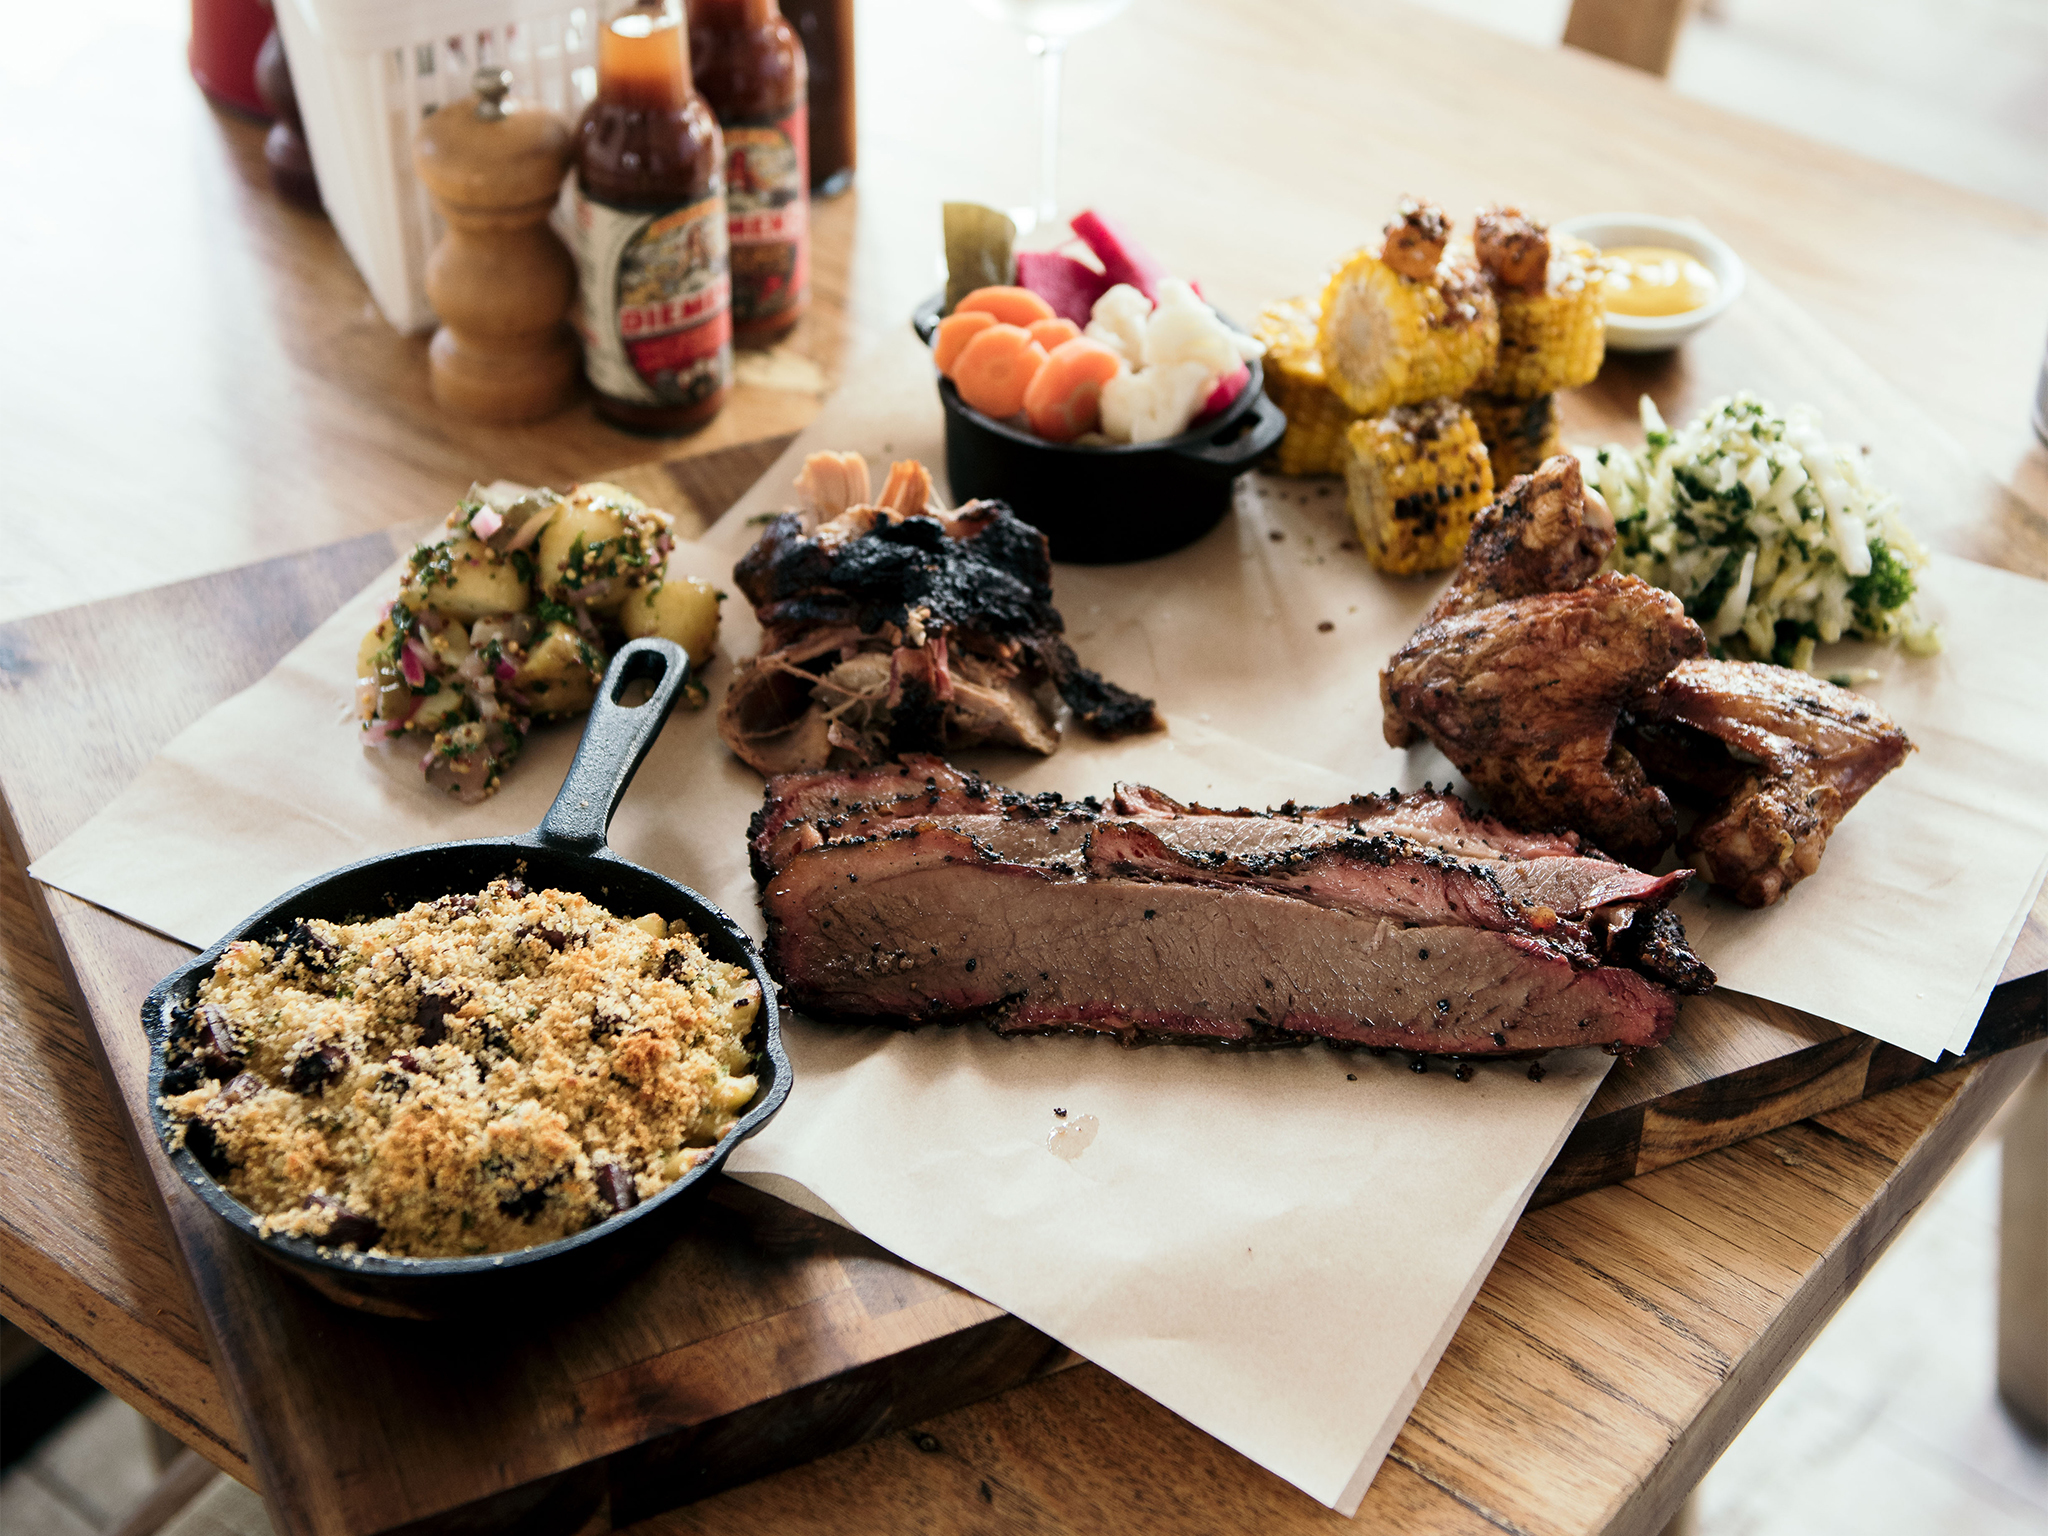 Meat and assorted sides at Burn City Smokers Pop-Up